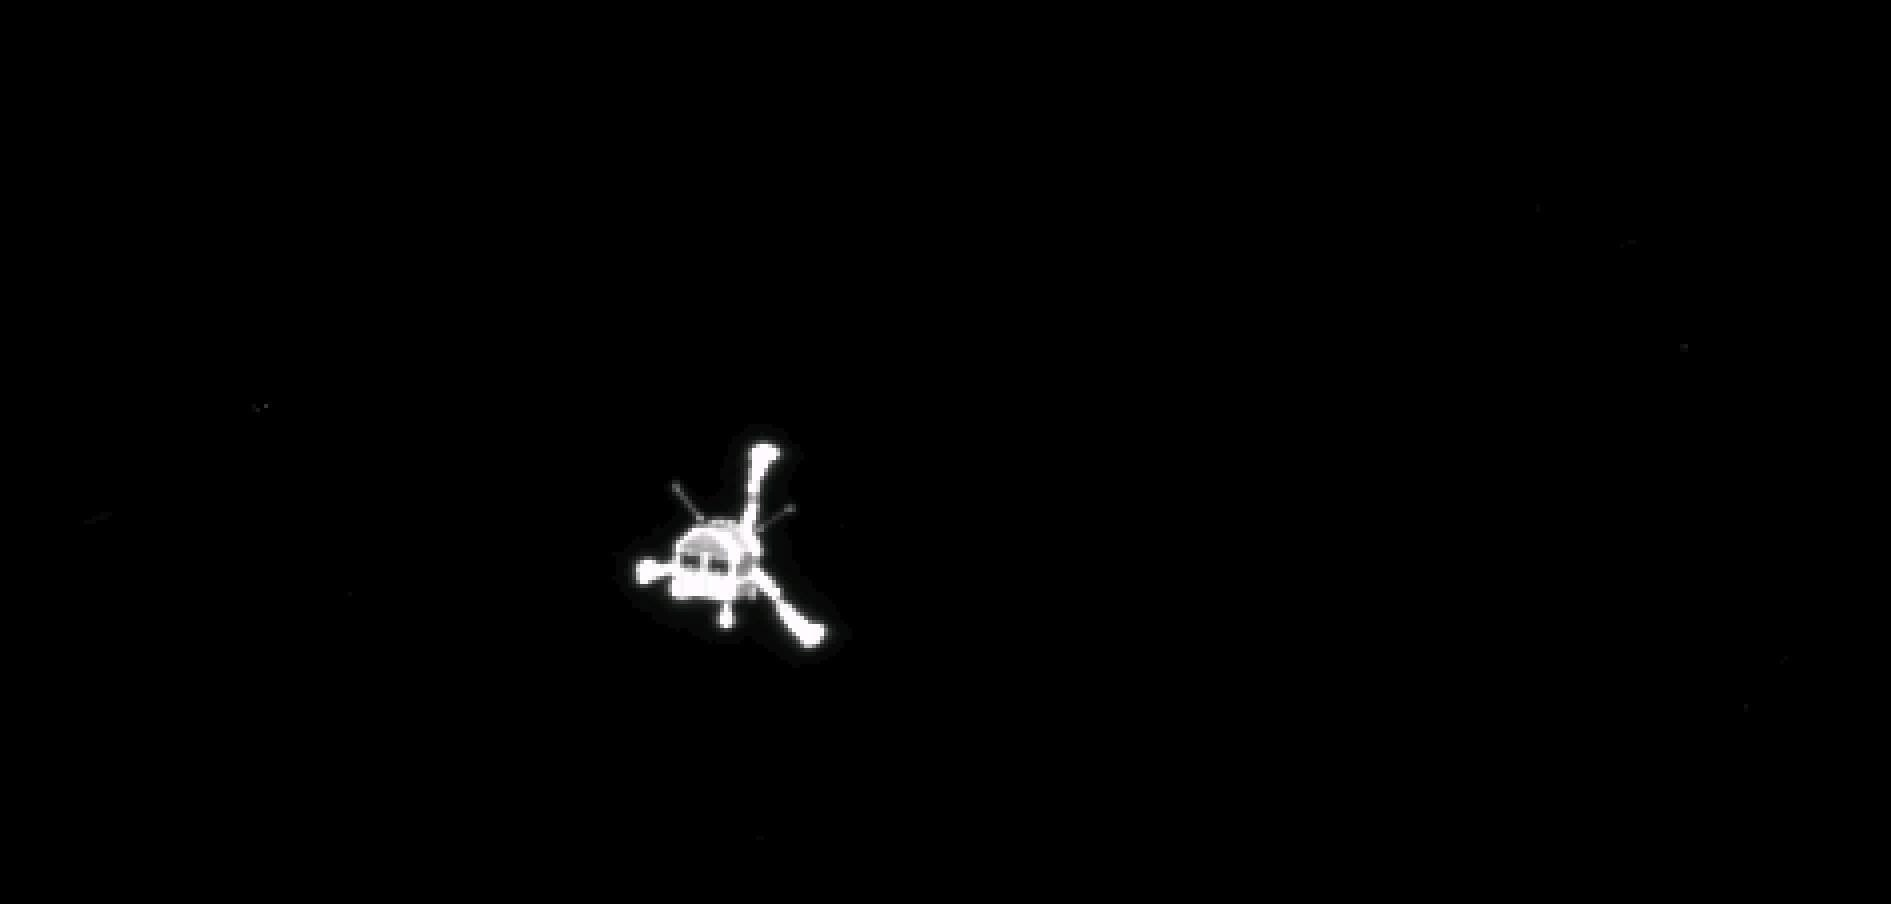 The Philae lander shortly after separation from Rosetta, on Nov. 12, 2014.